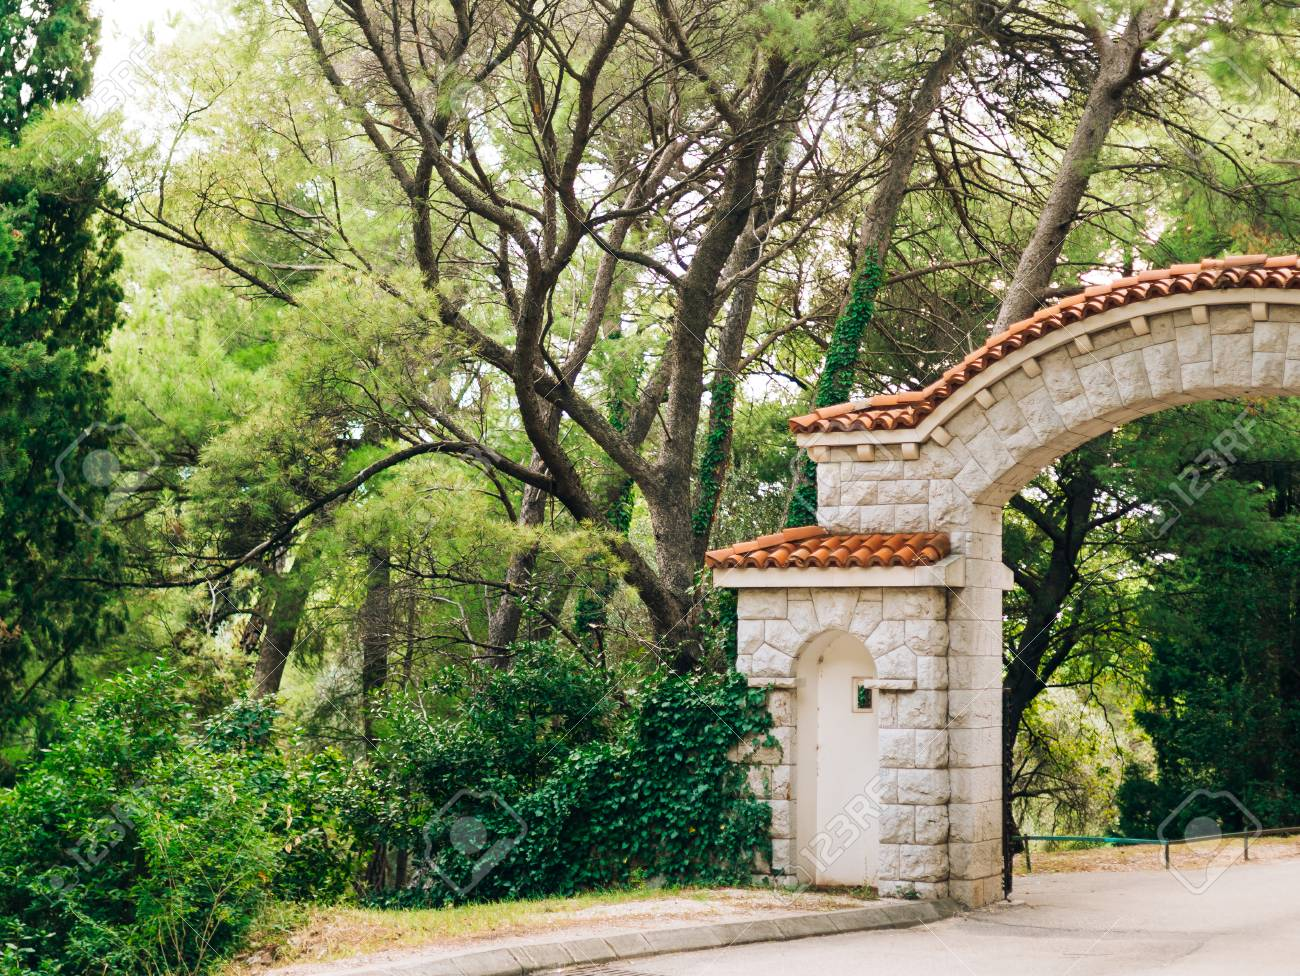 Stone Gate With A Tiled Roof In The Forest Handmade Exterior Stock Photo Picture And Royalty Free Image Image 86102488